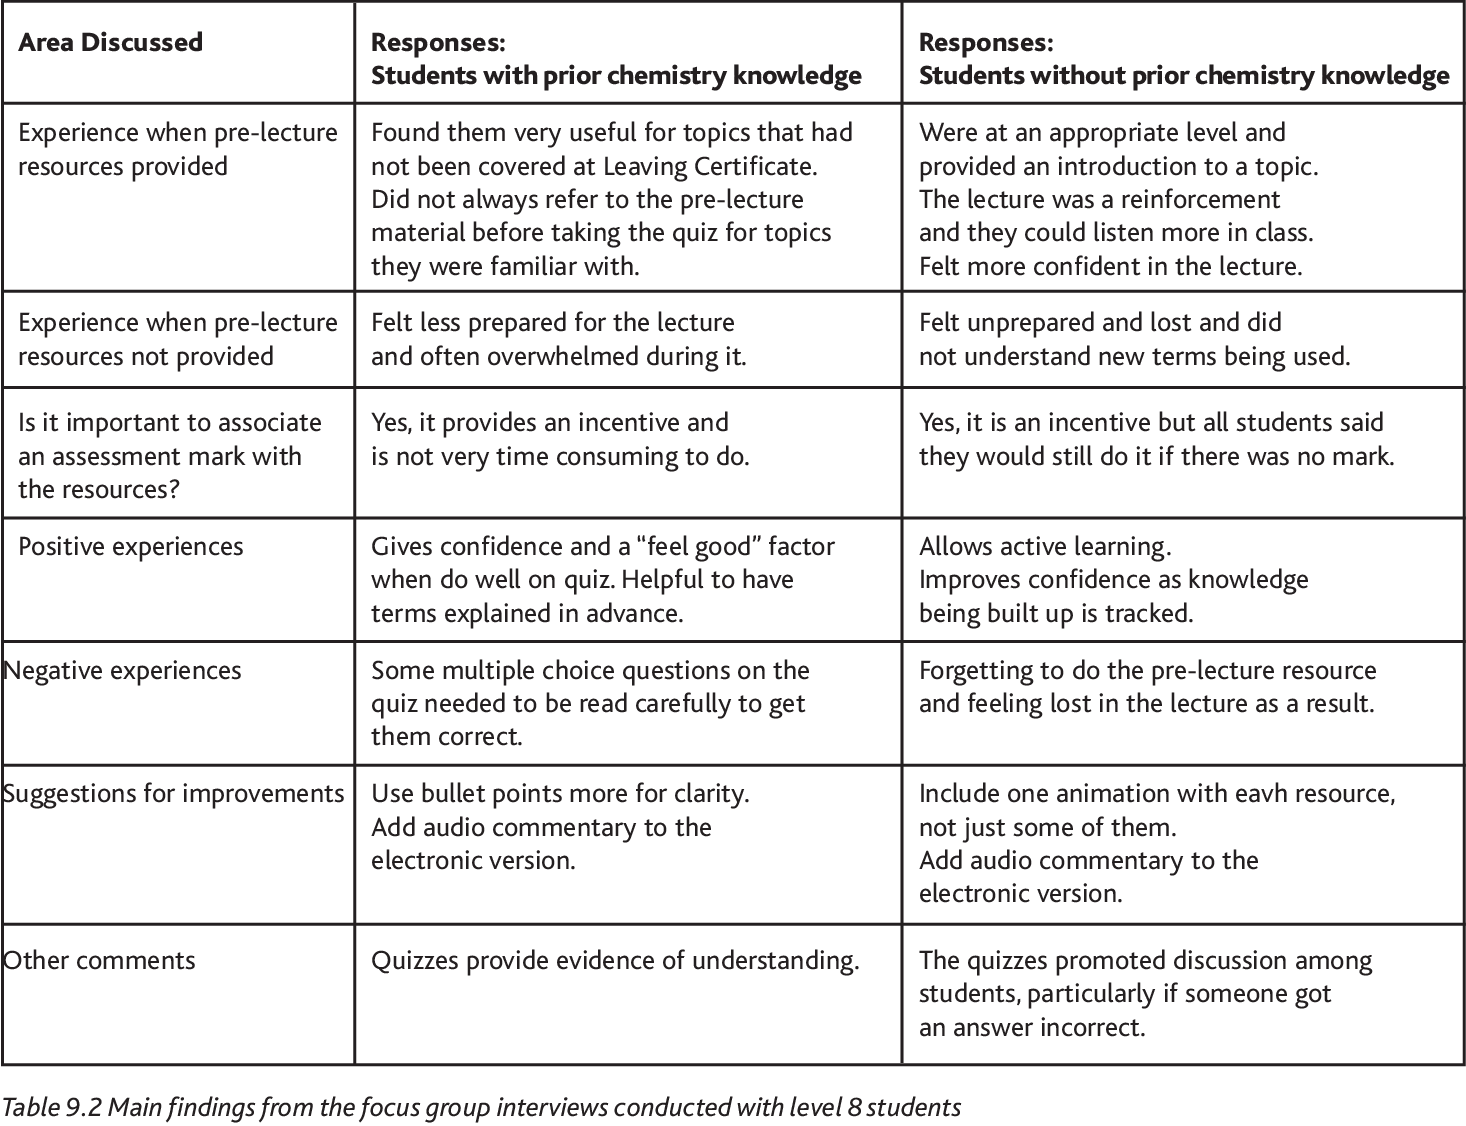 Table 9 1 from Scaffolding for Cognitive Overload Using Pre-lecture